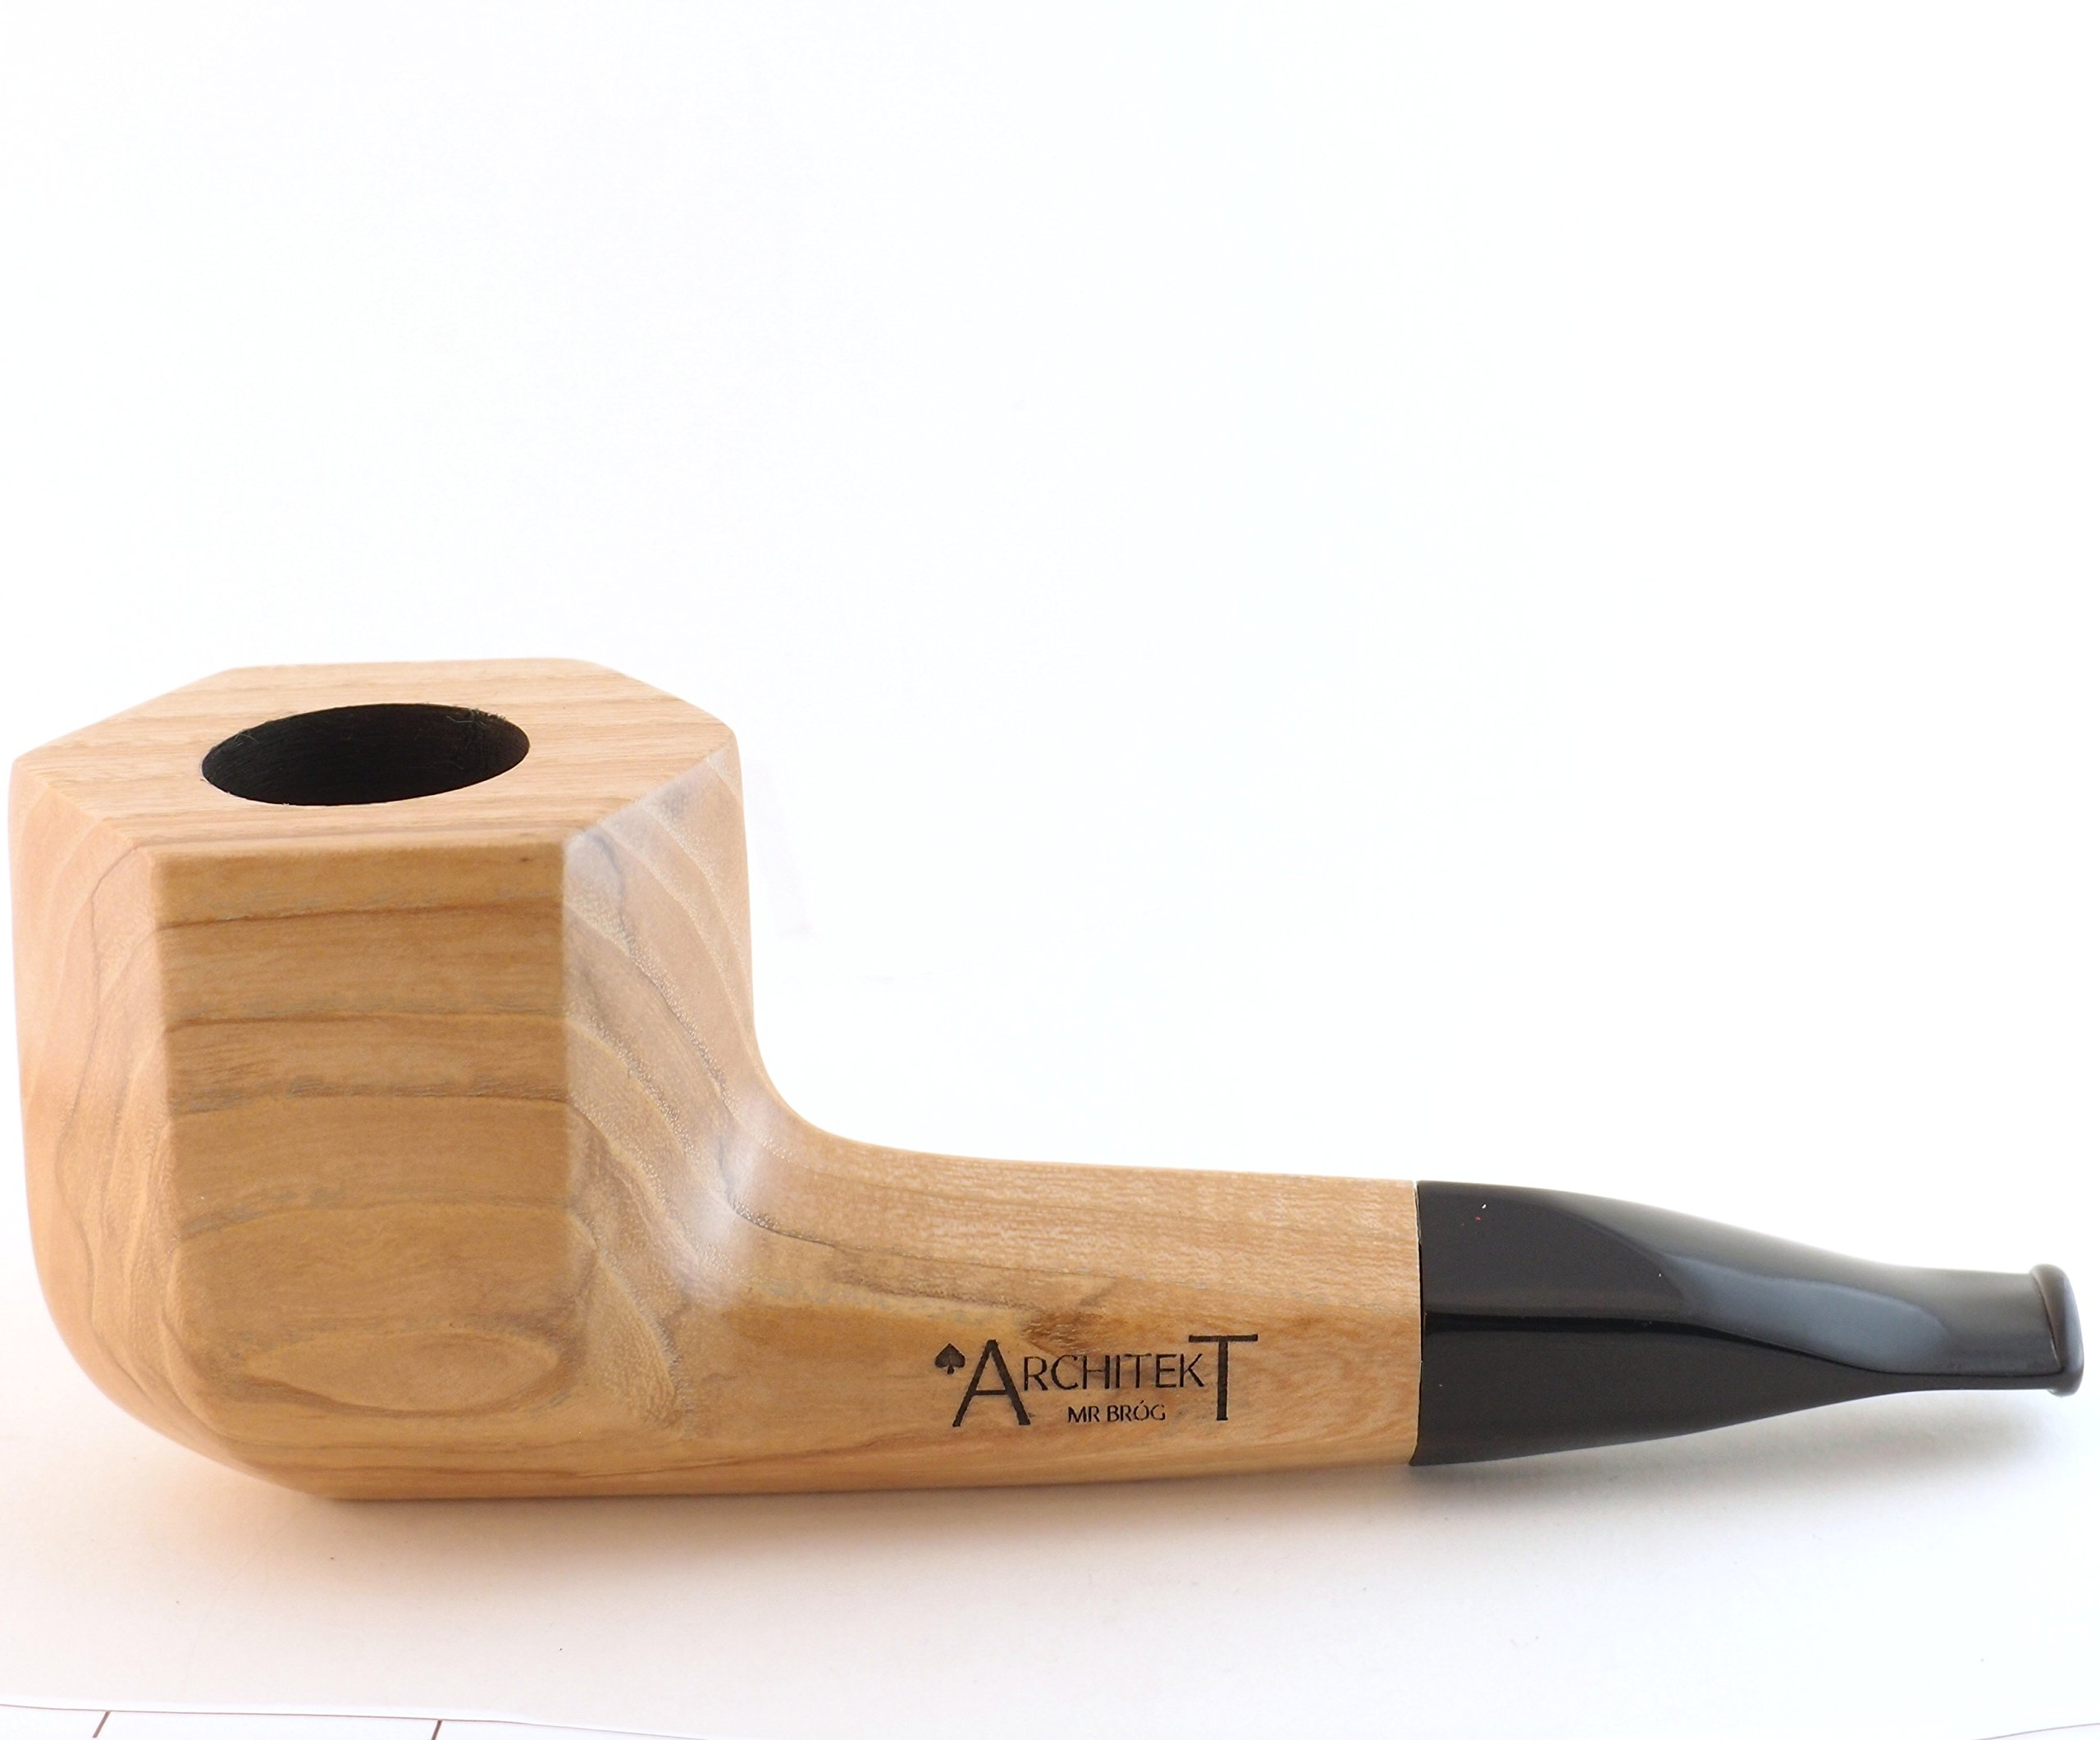 Mr. Brog Tobacco Pipe - Model No: 307 Architekt Hexagon - Natural - Hand Made from Top Quality Acacia Woodblock by Mr. Brog